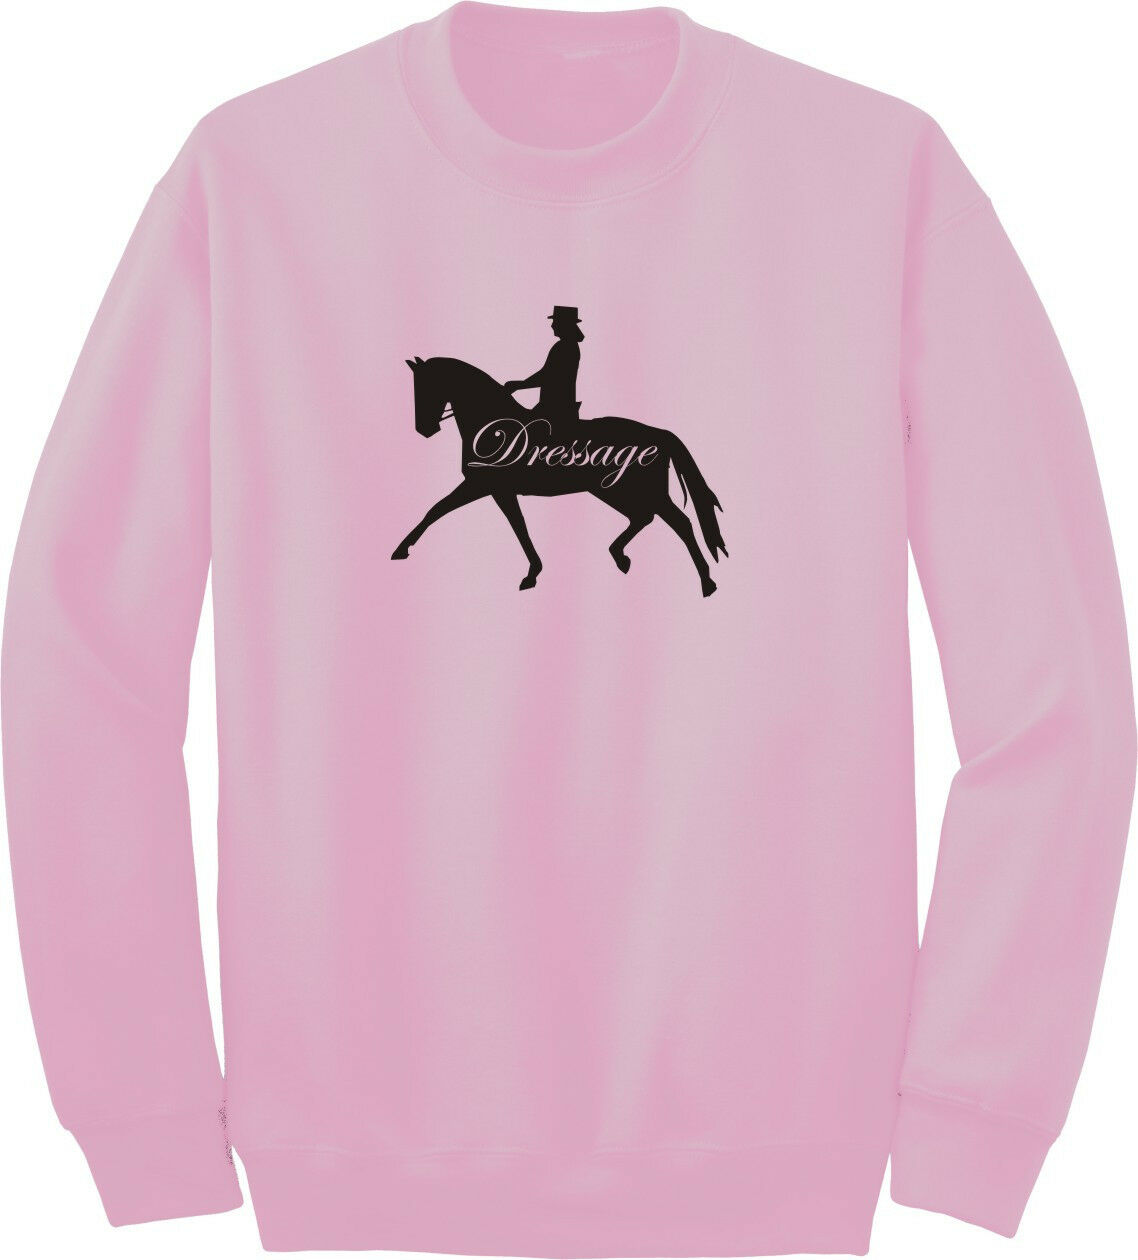 Dressage Square Horse and Rider Horse Lover/'s Sweatshirt Multiple Colors /& Sizes